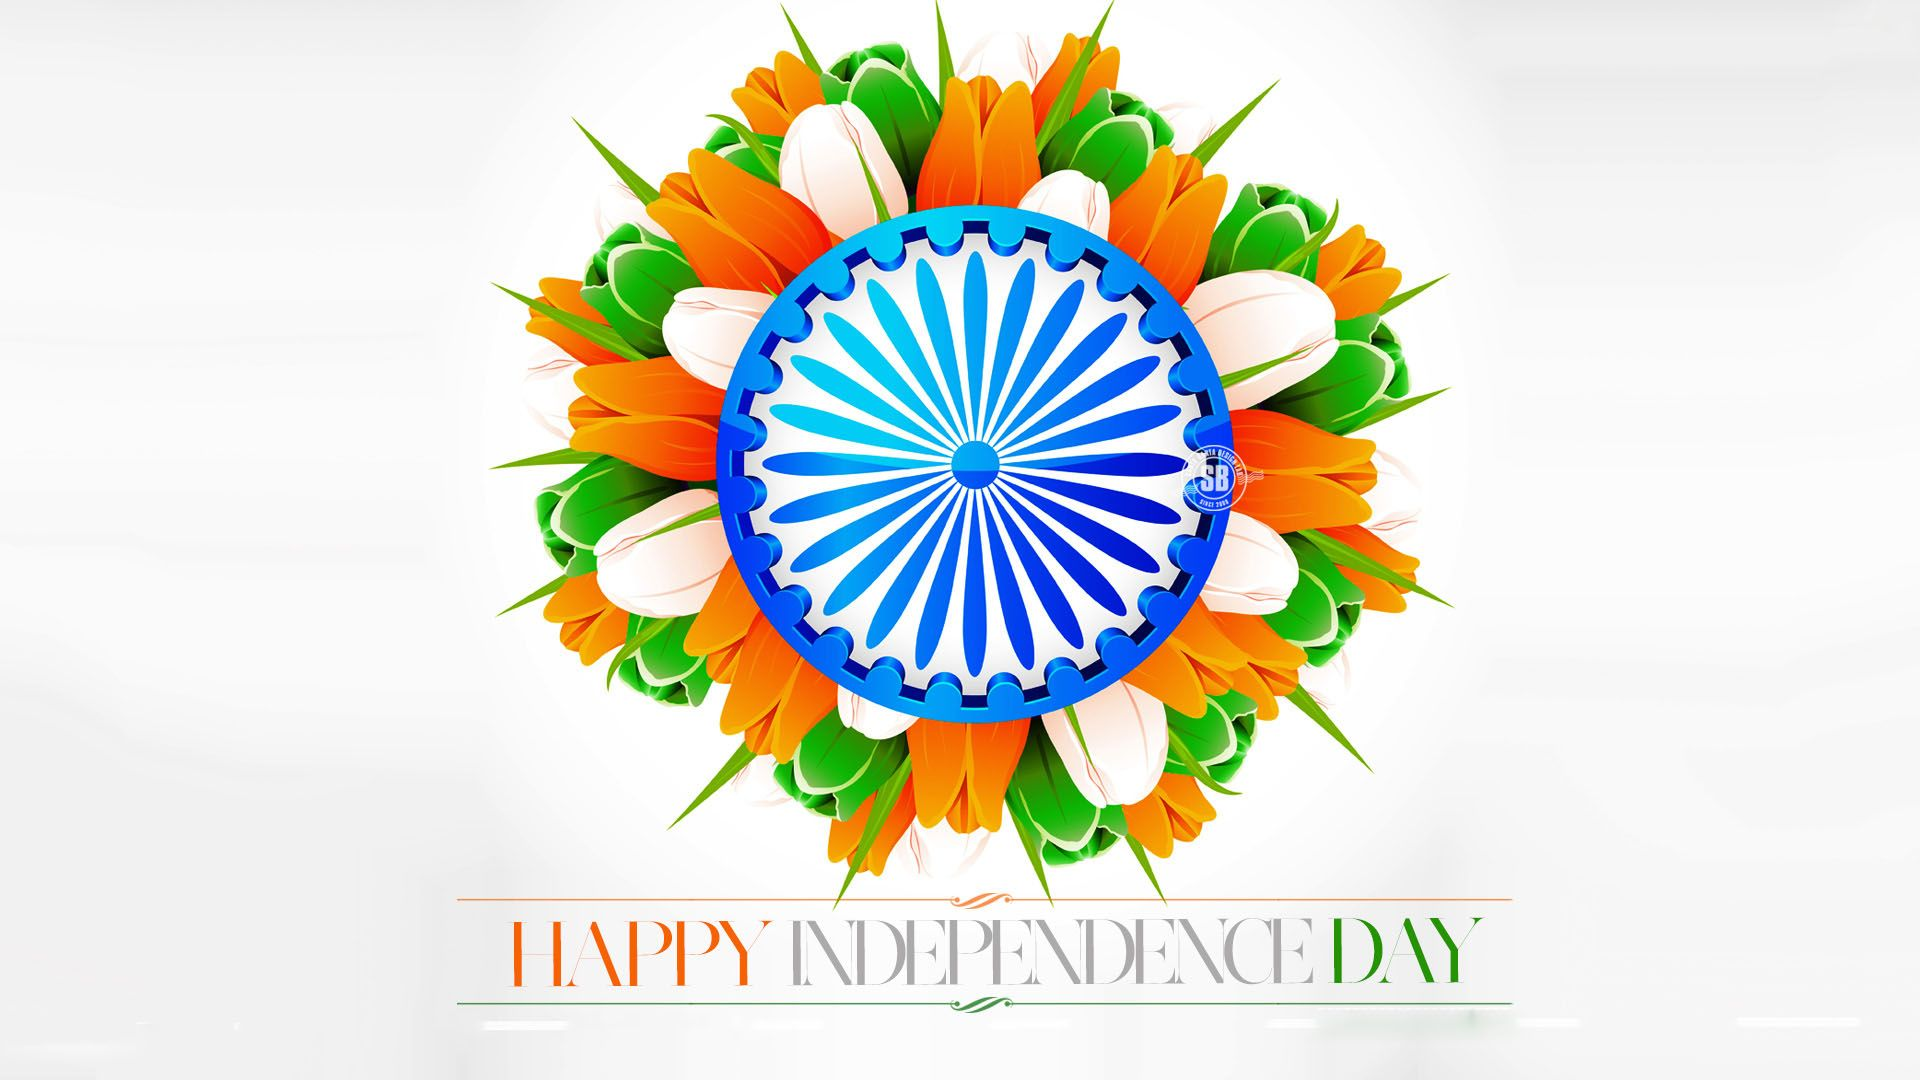 15th August Wallpapers Hd Independence Day Wallpaper Happy Independence Day Images Independence Day Images